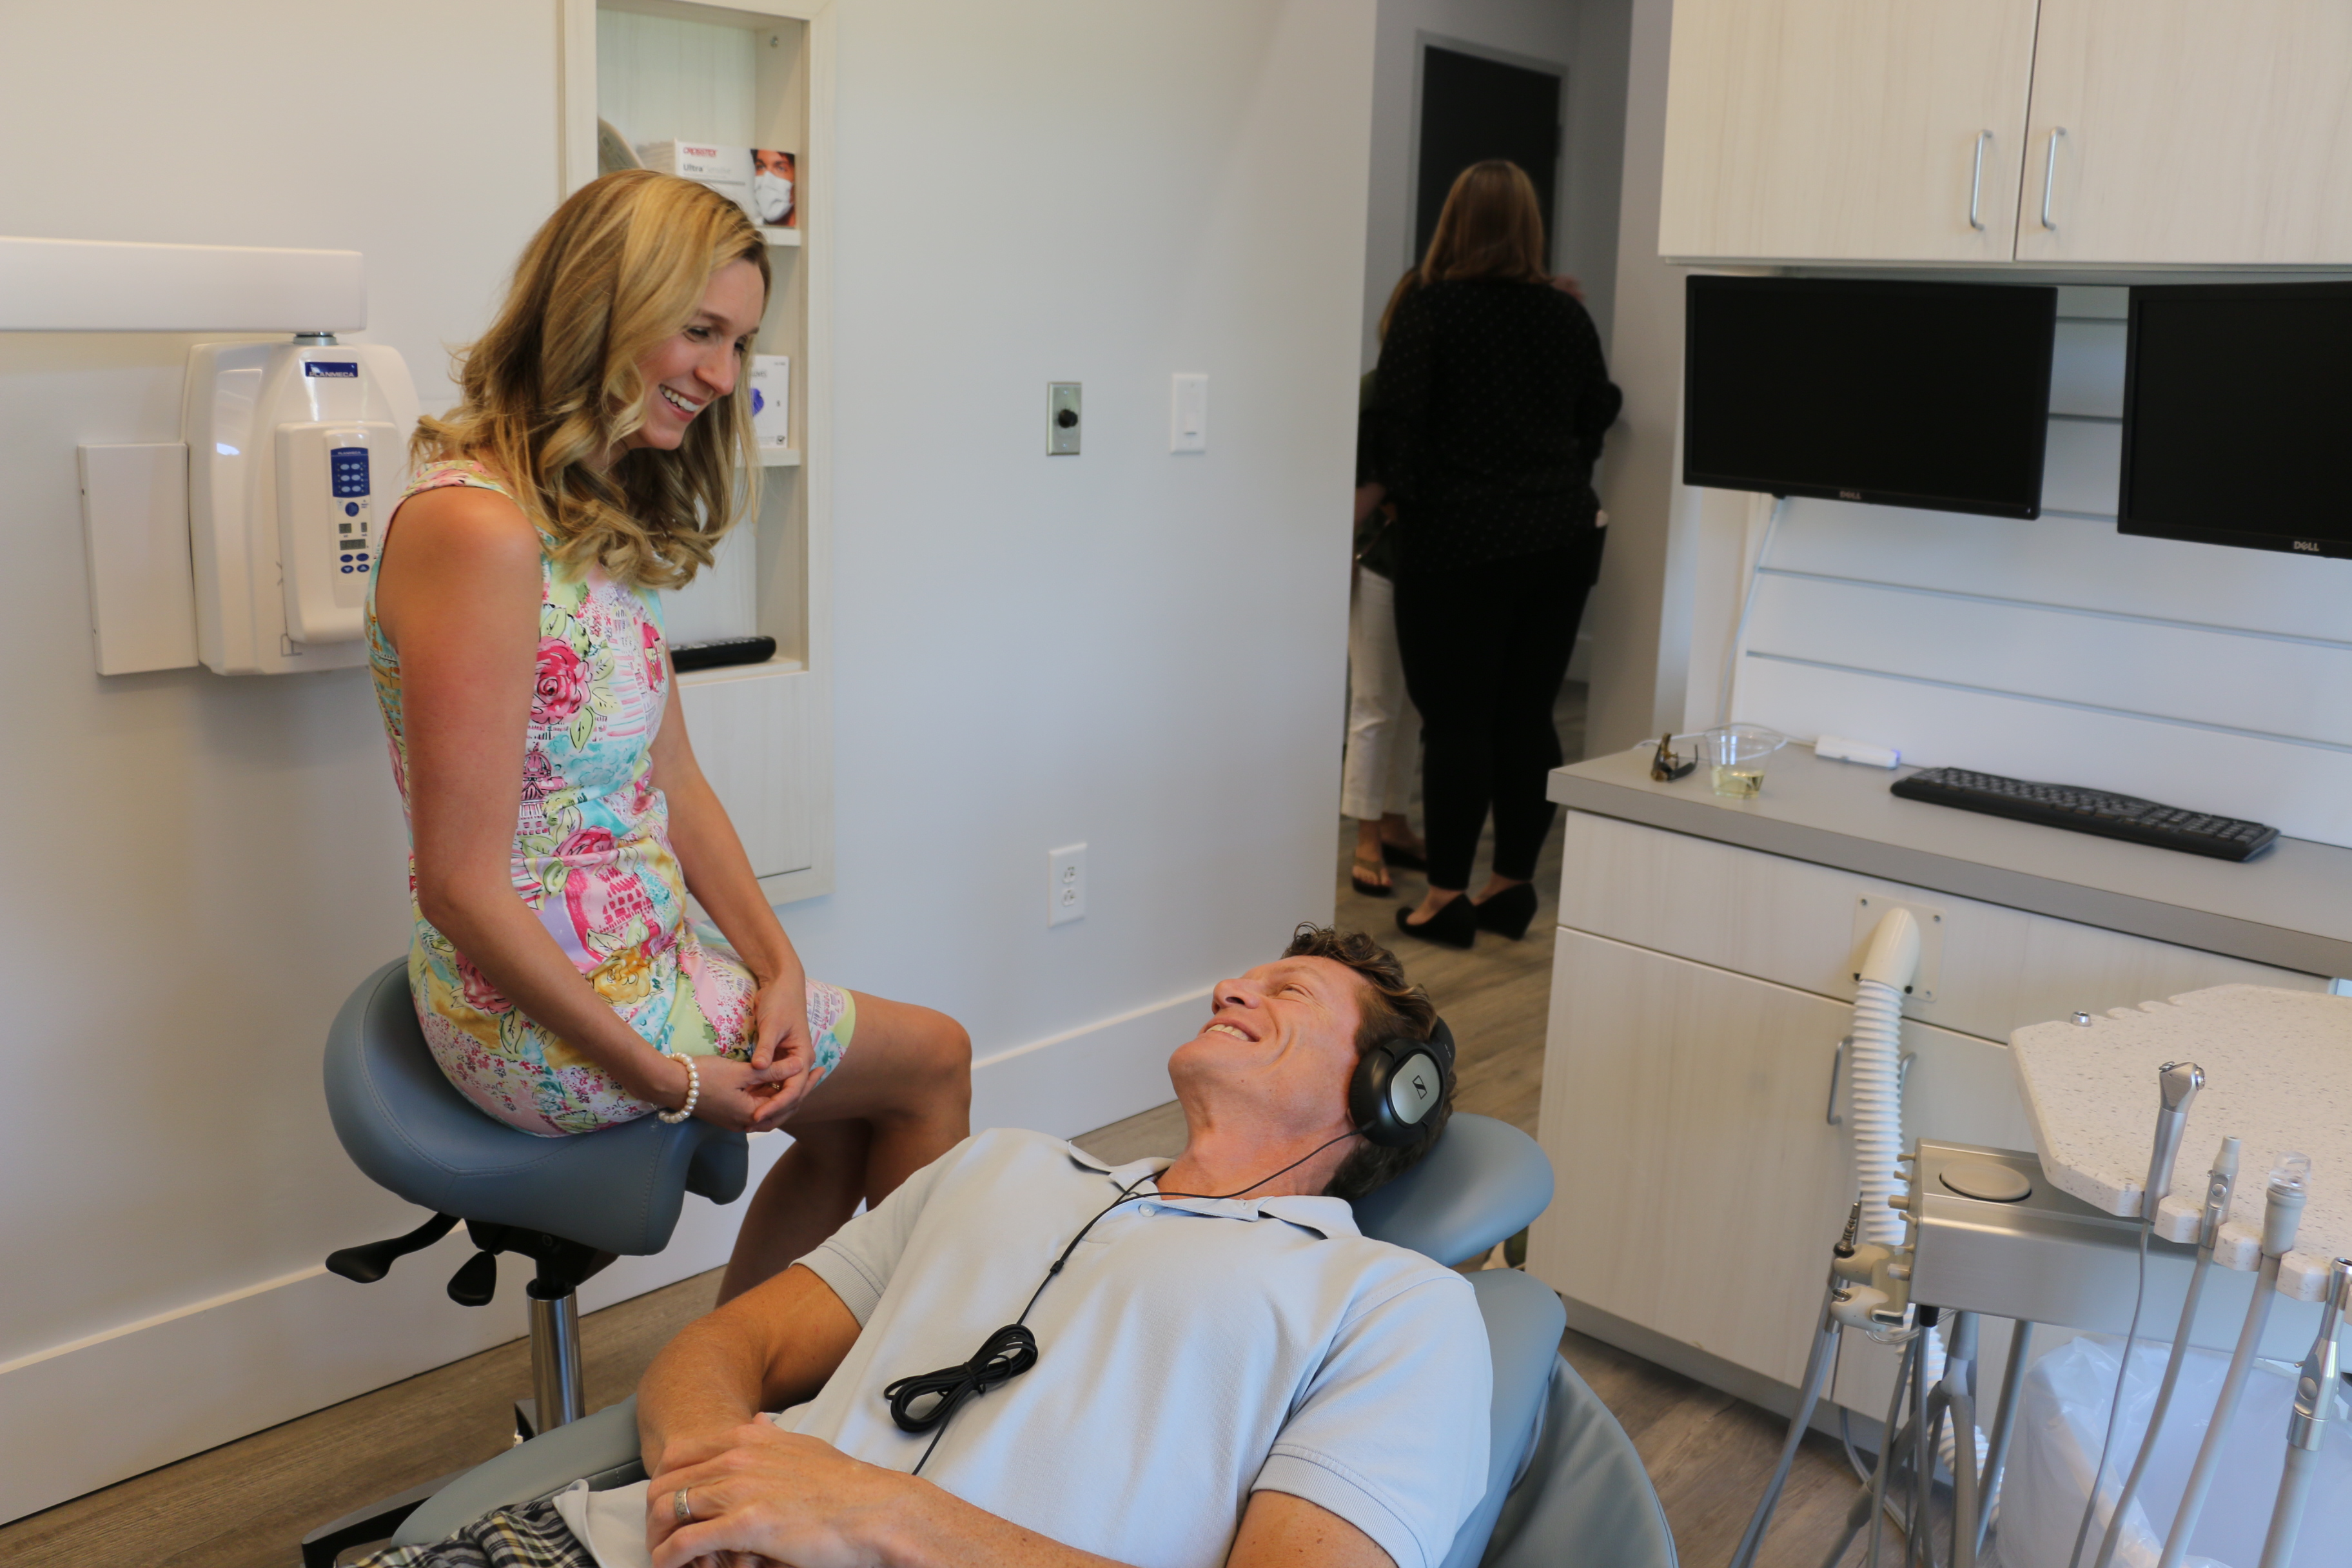 Dr. Zechmann talks to patient Jeff Byrd as he relaxes in the patient recliner.